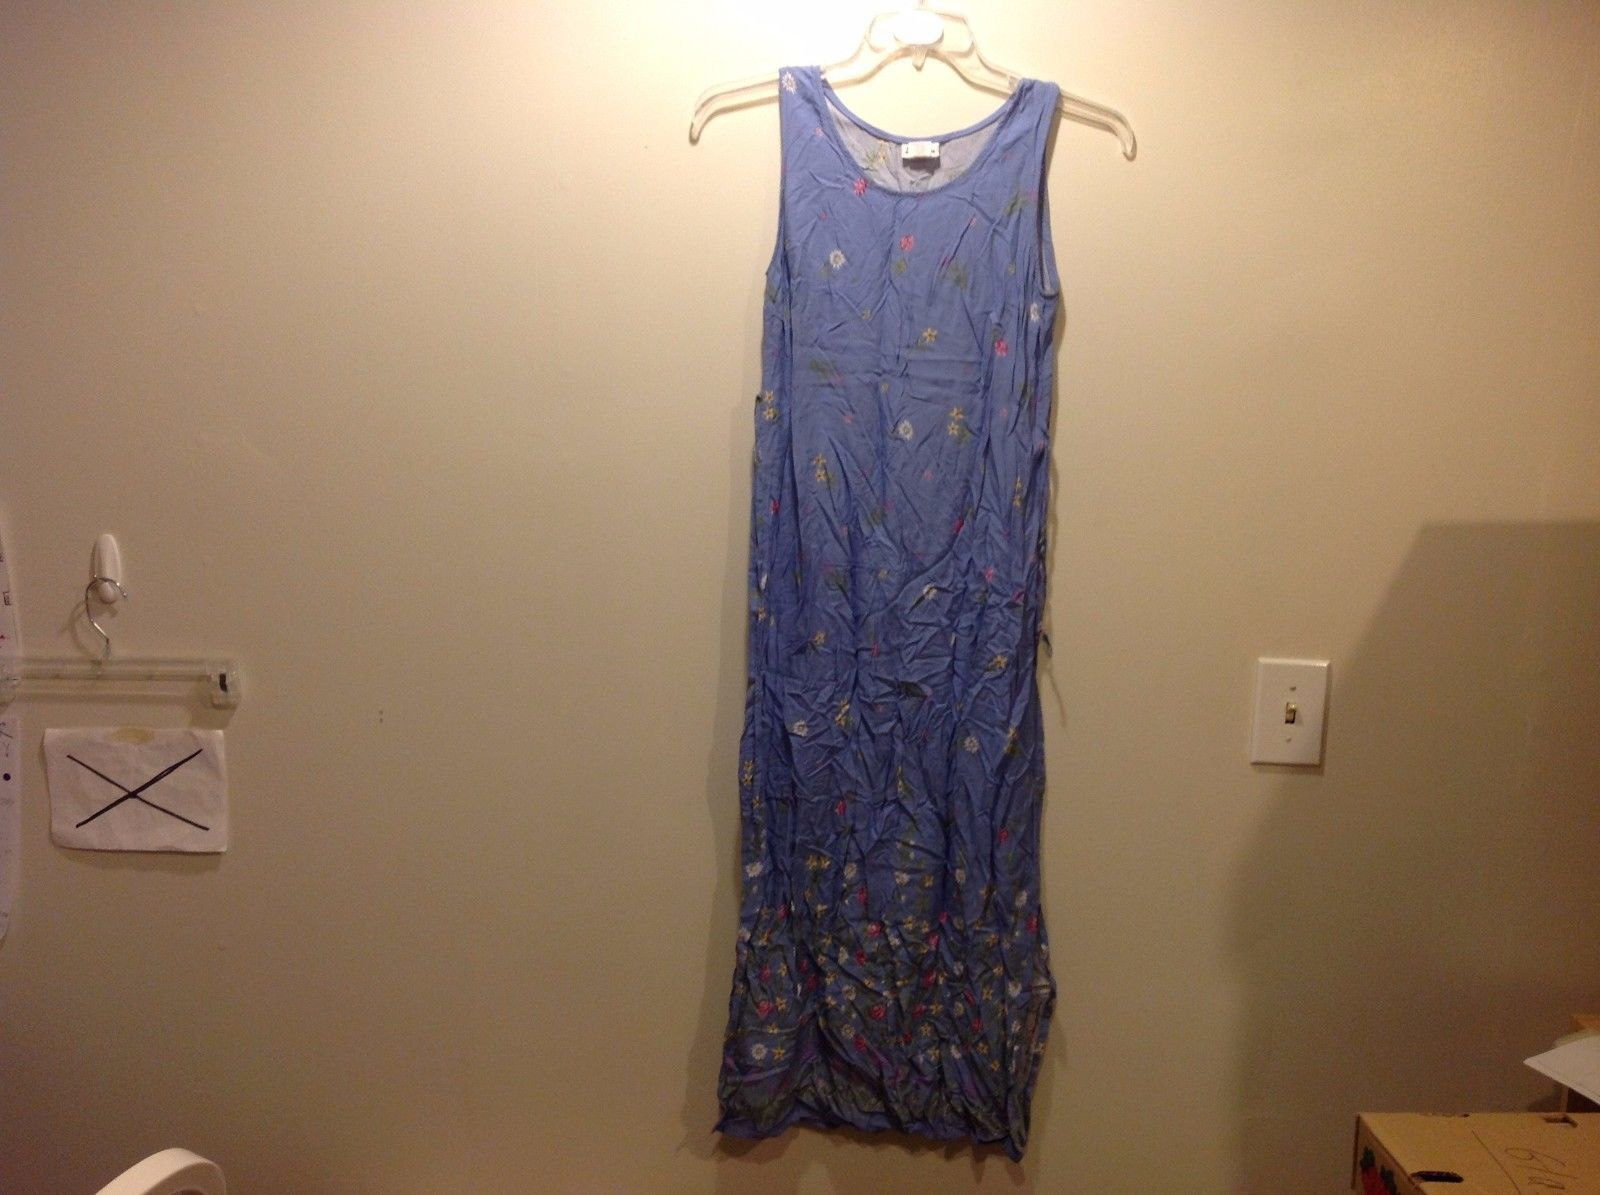 Darian Lavender Periwinkle Sleeveless Floral Dress Sz 6